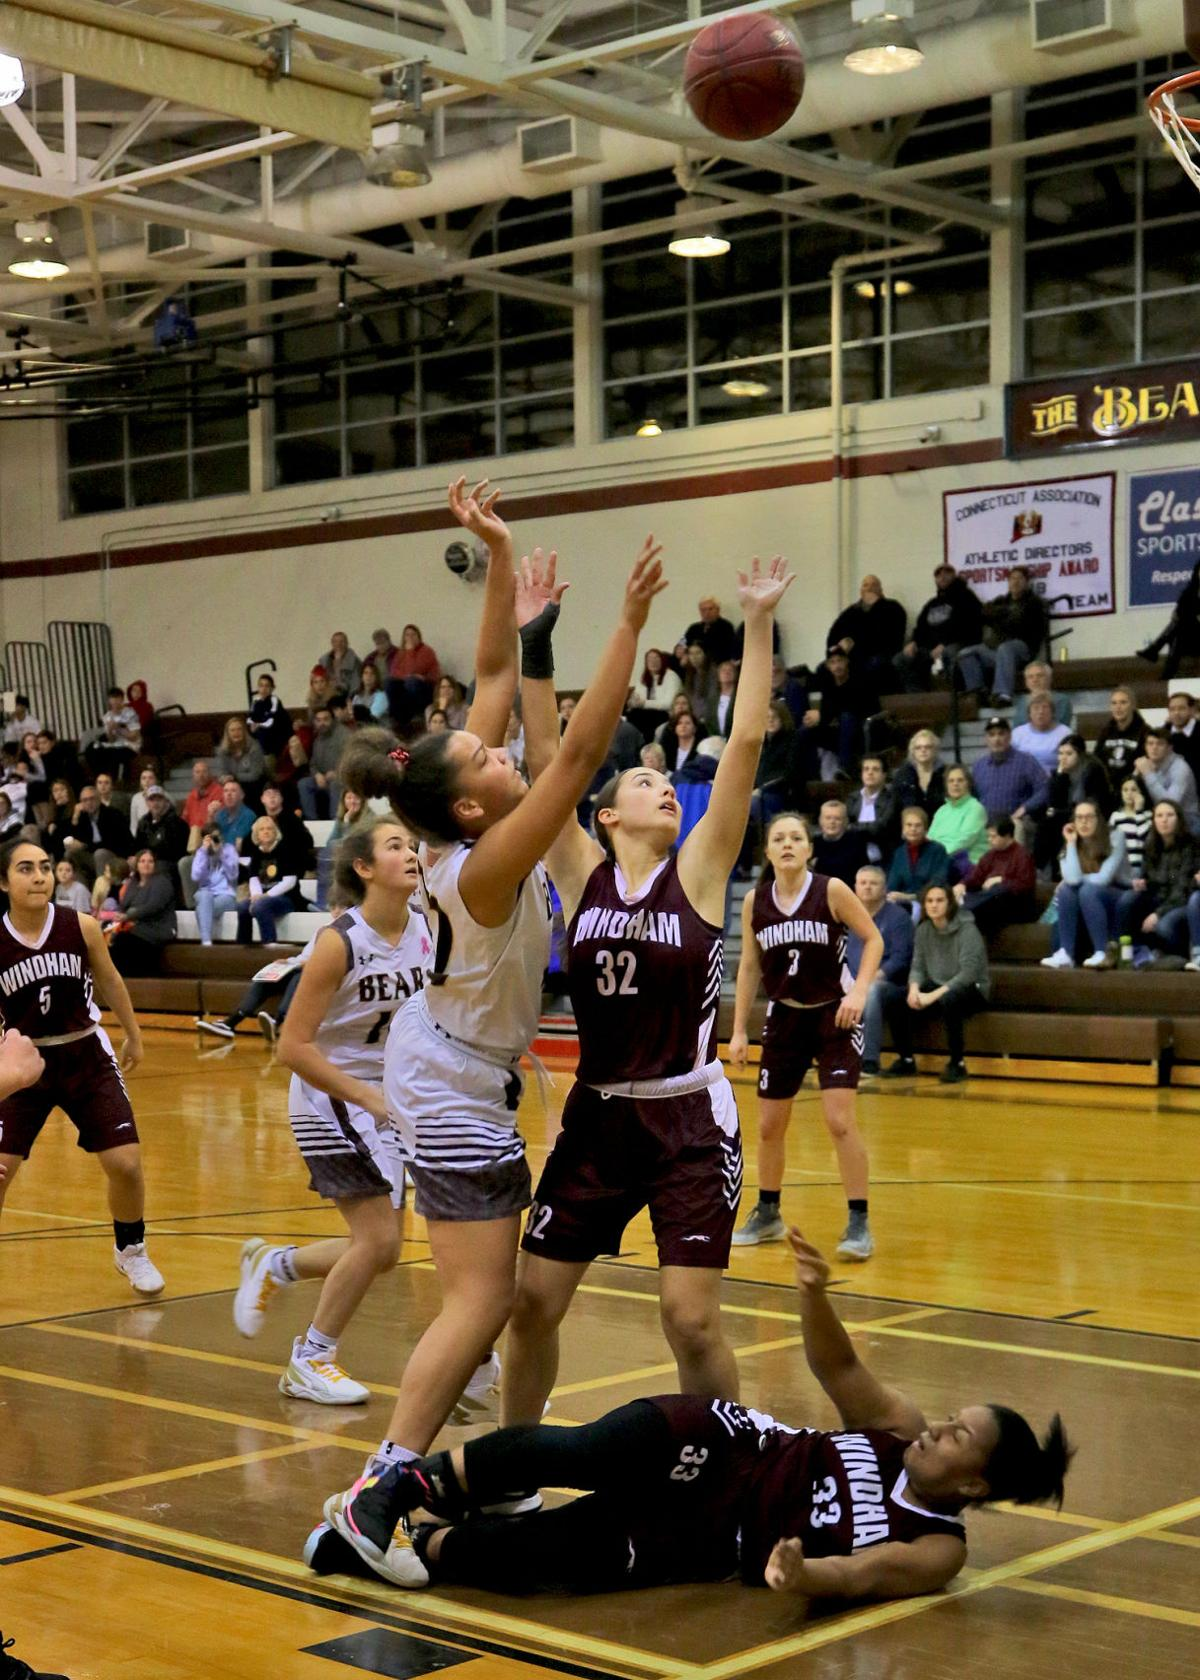 Stonington's Sophia Bell shoots from the lane during a game against Windham in January. Bell averaged 14.4 points and 13.6 rebounds to earn ECC Division-II honorable mention recognition.